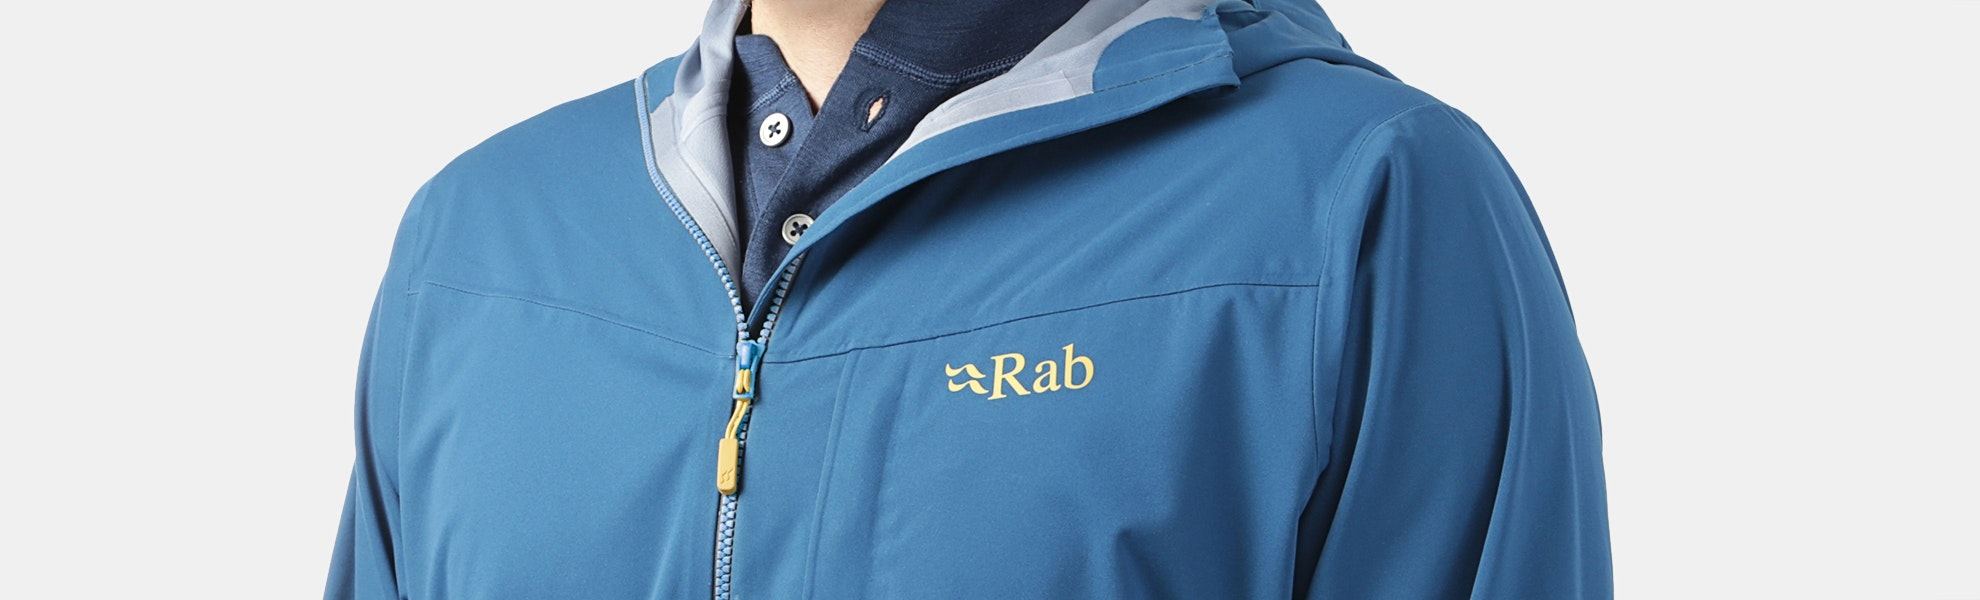 Massdrop x Rab Kinetic Jacket